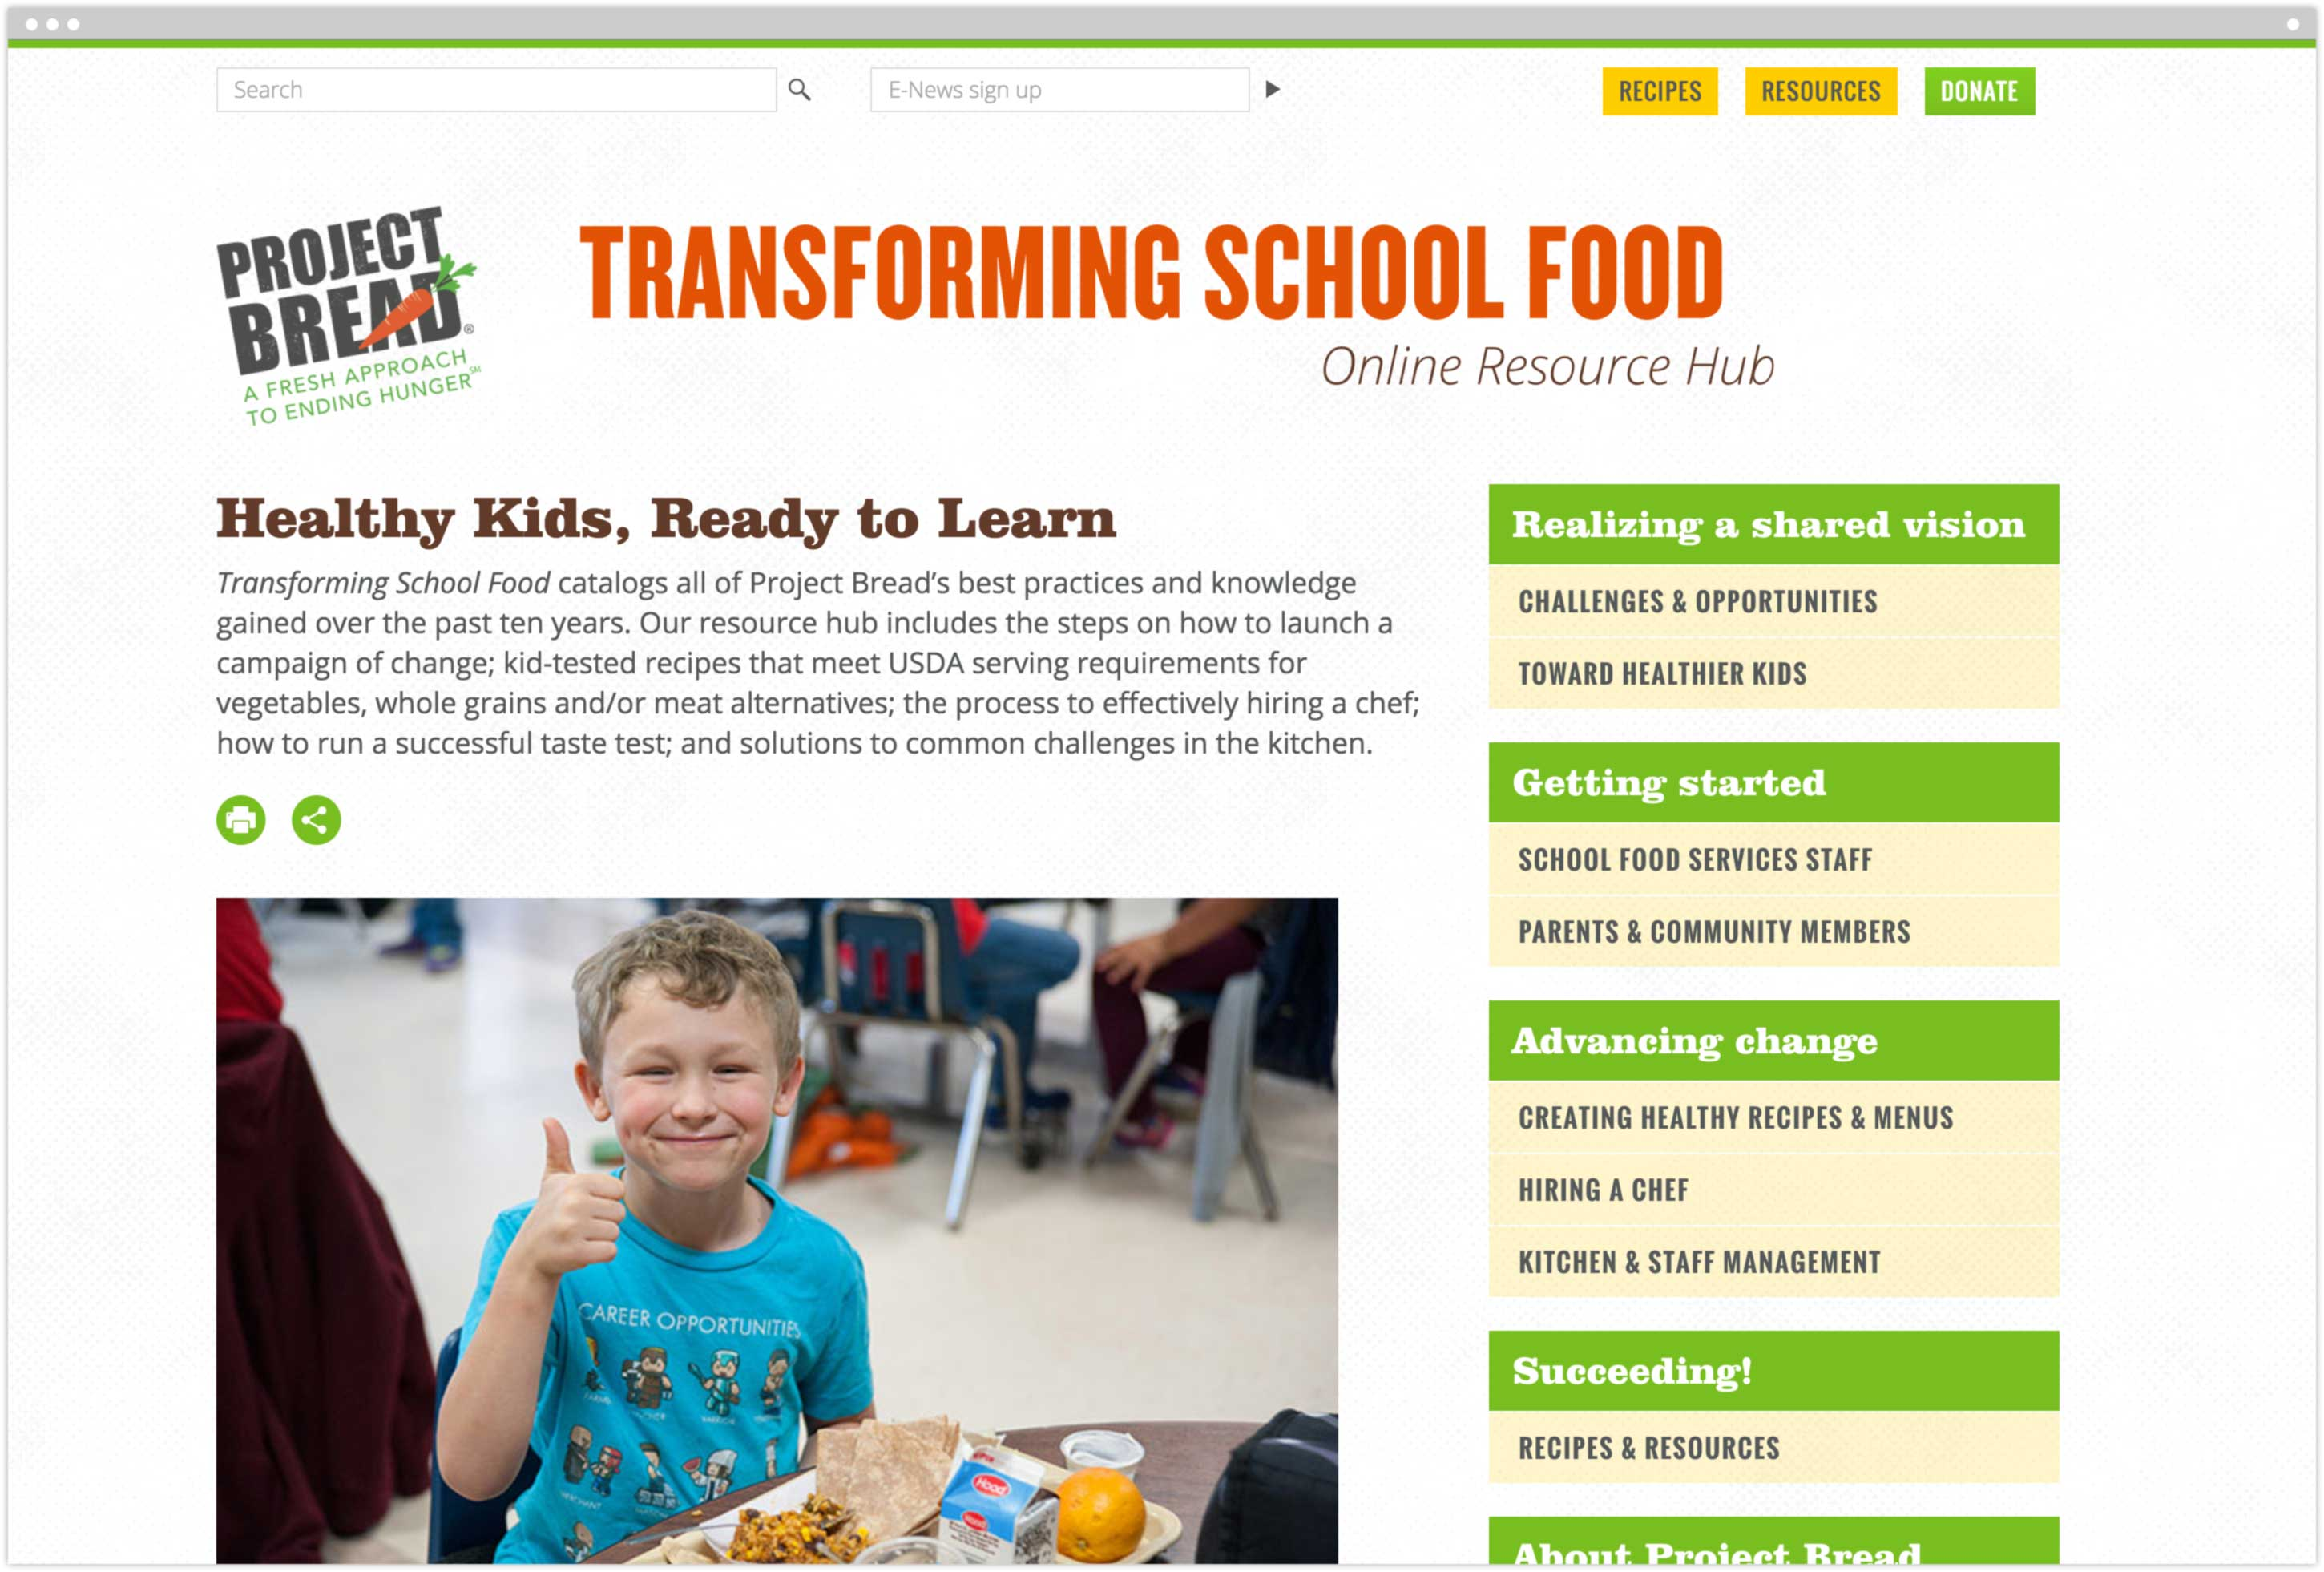 Transforming School Food Online Resource Hub homepage